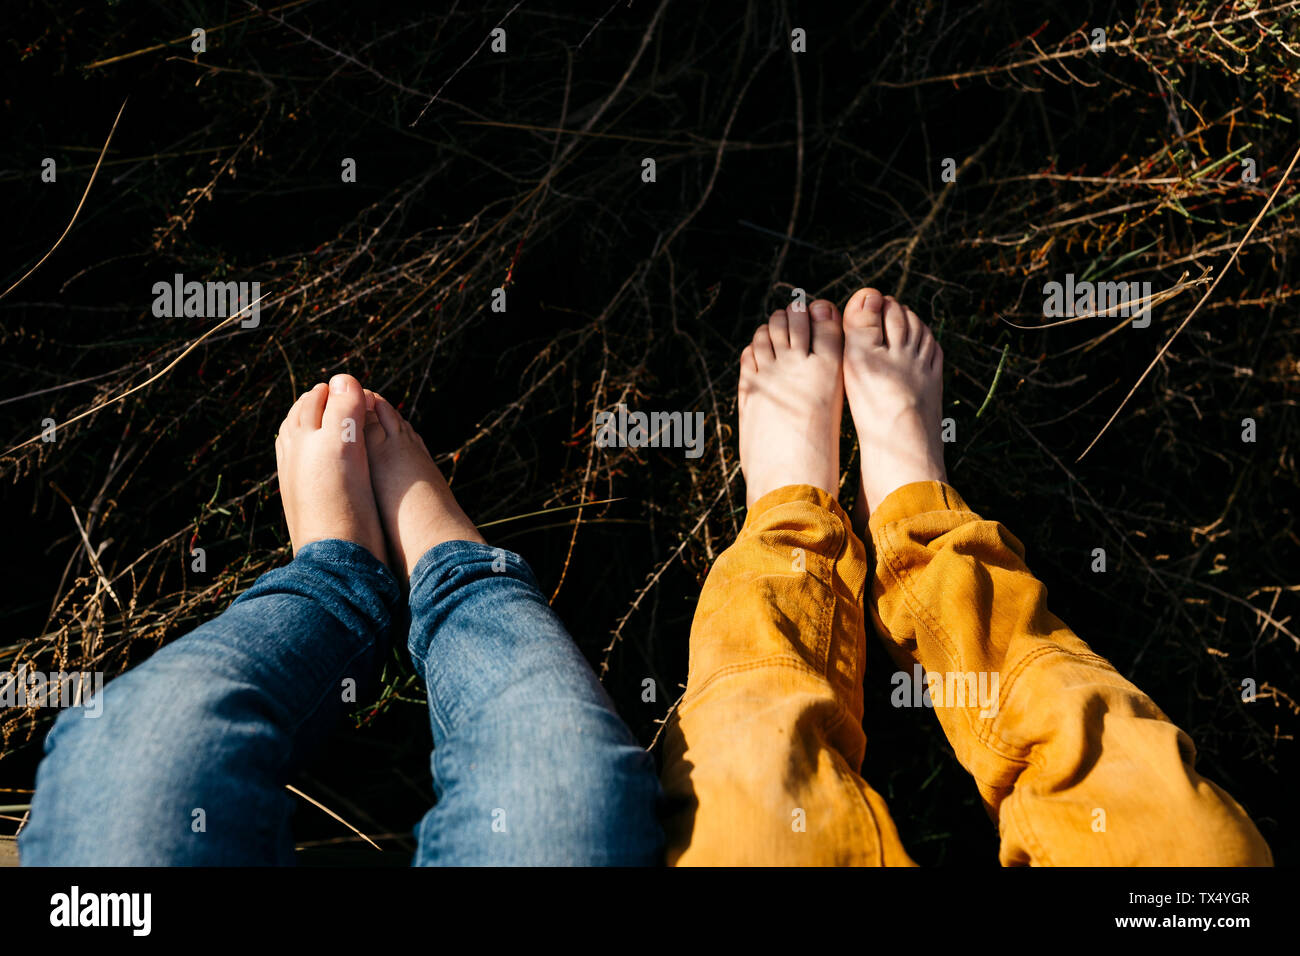 Feet of little girl and her older brother in nature, close-up Stock Photo